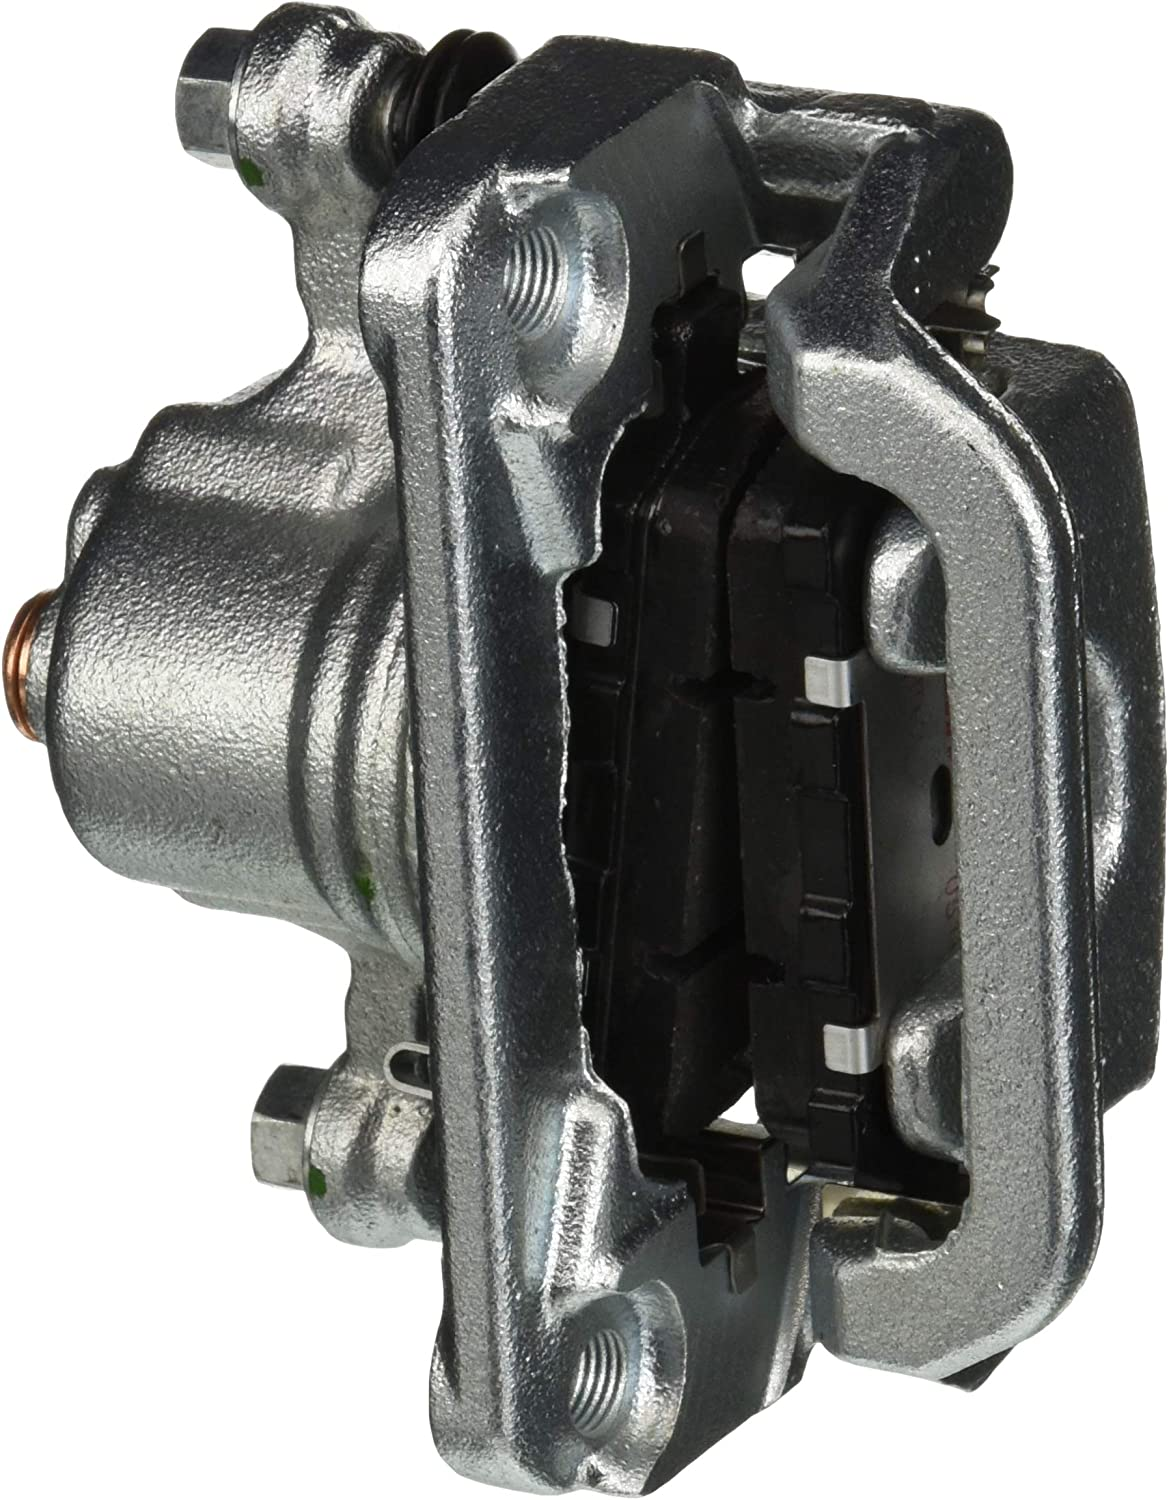 Raybestos RC12032C RPT Rust Prevention Technology Brake Caliper Bracket